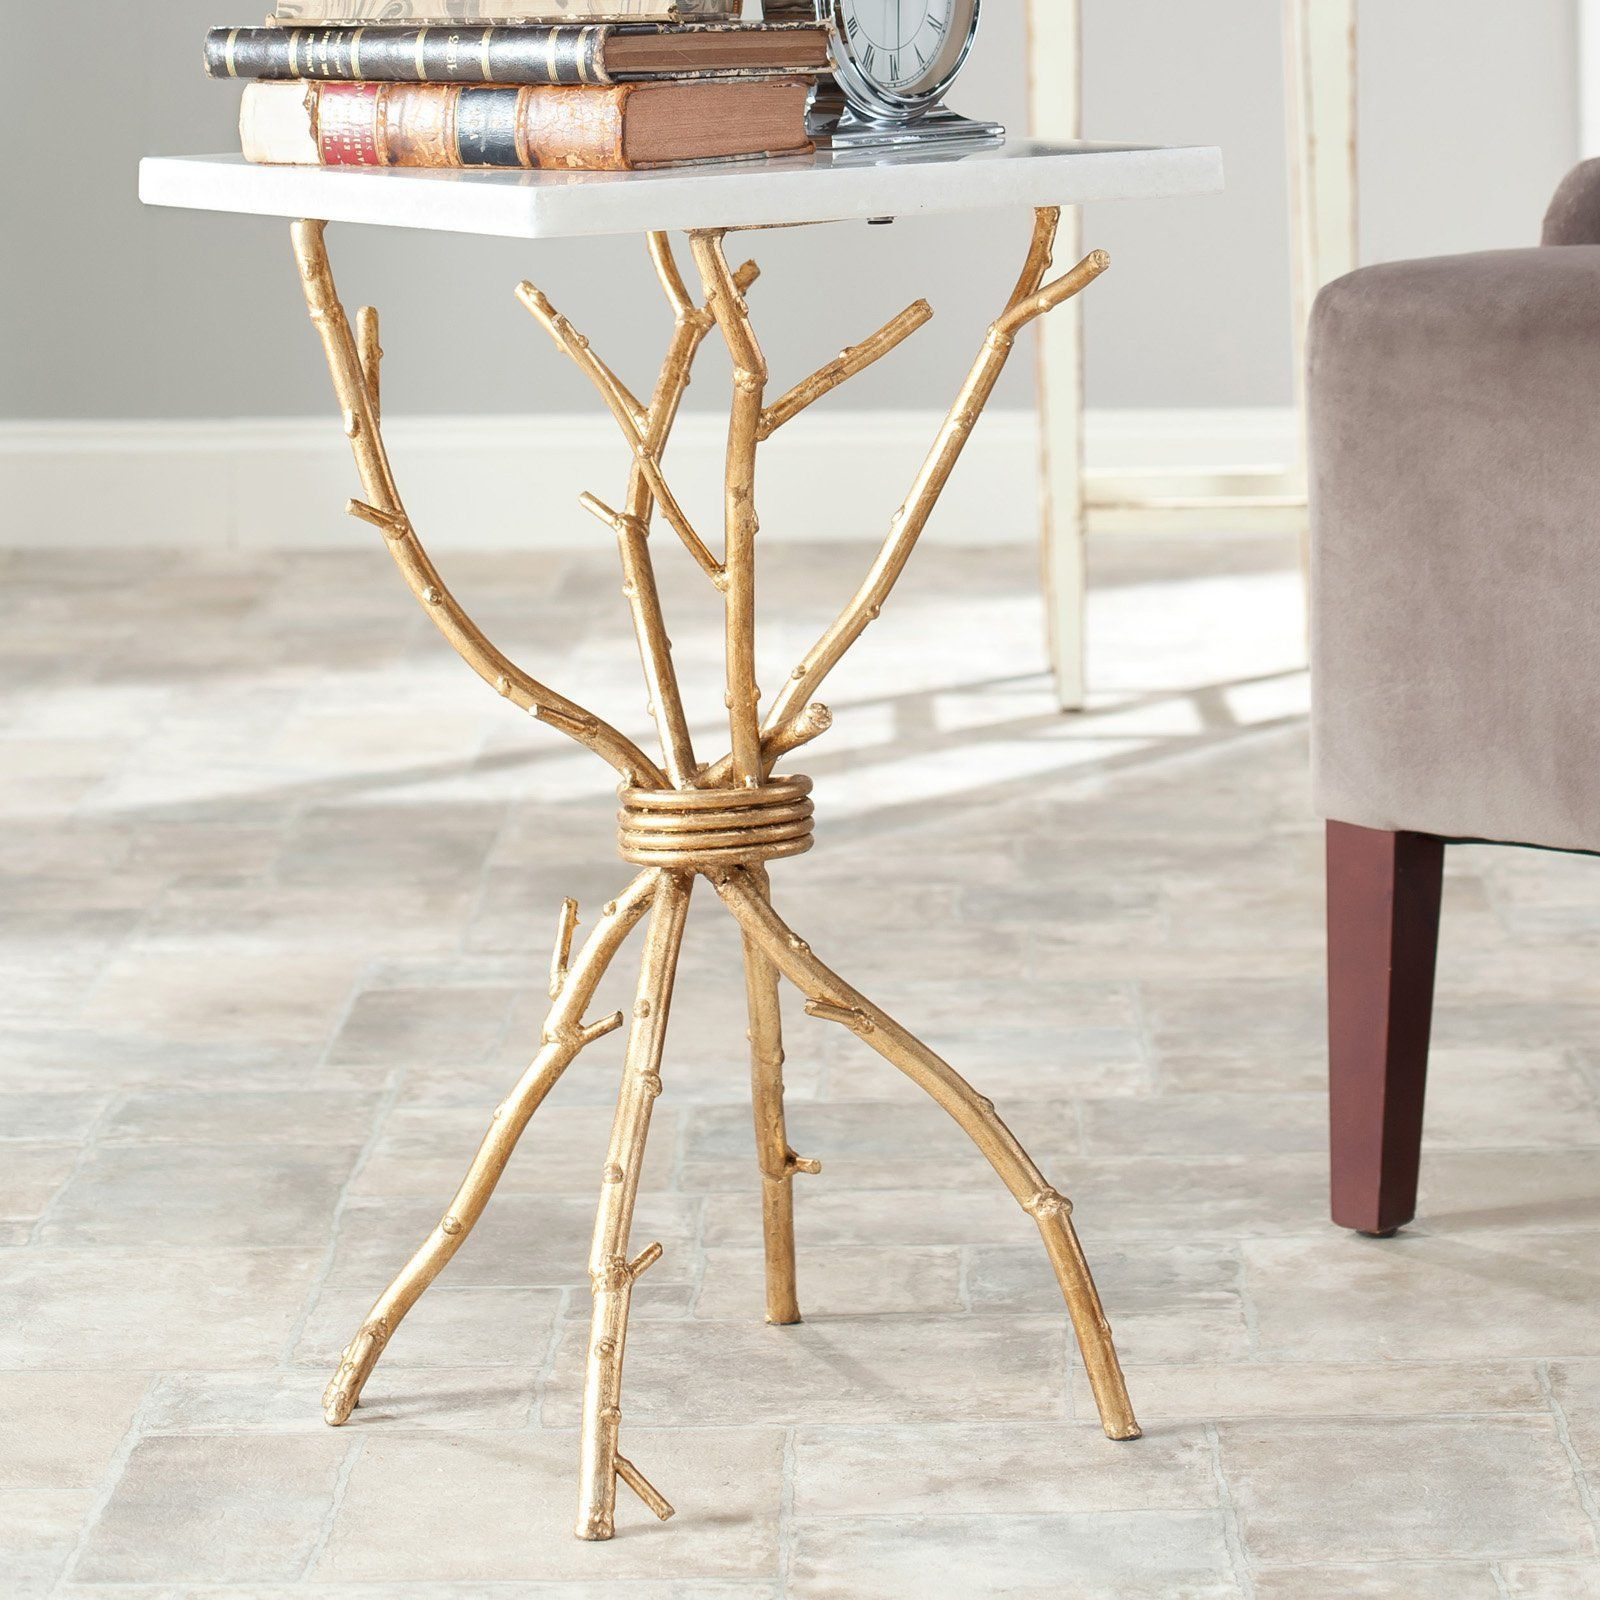 safavieh alexa marble top gold accent table products white tablecloth measurements most popular coffee tables bamboo kitchen chairs black and decorations ifrane end cordless lamps